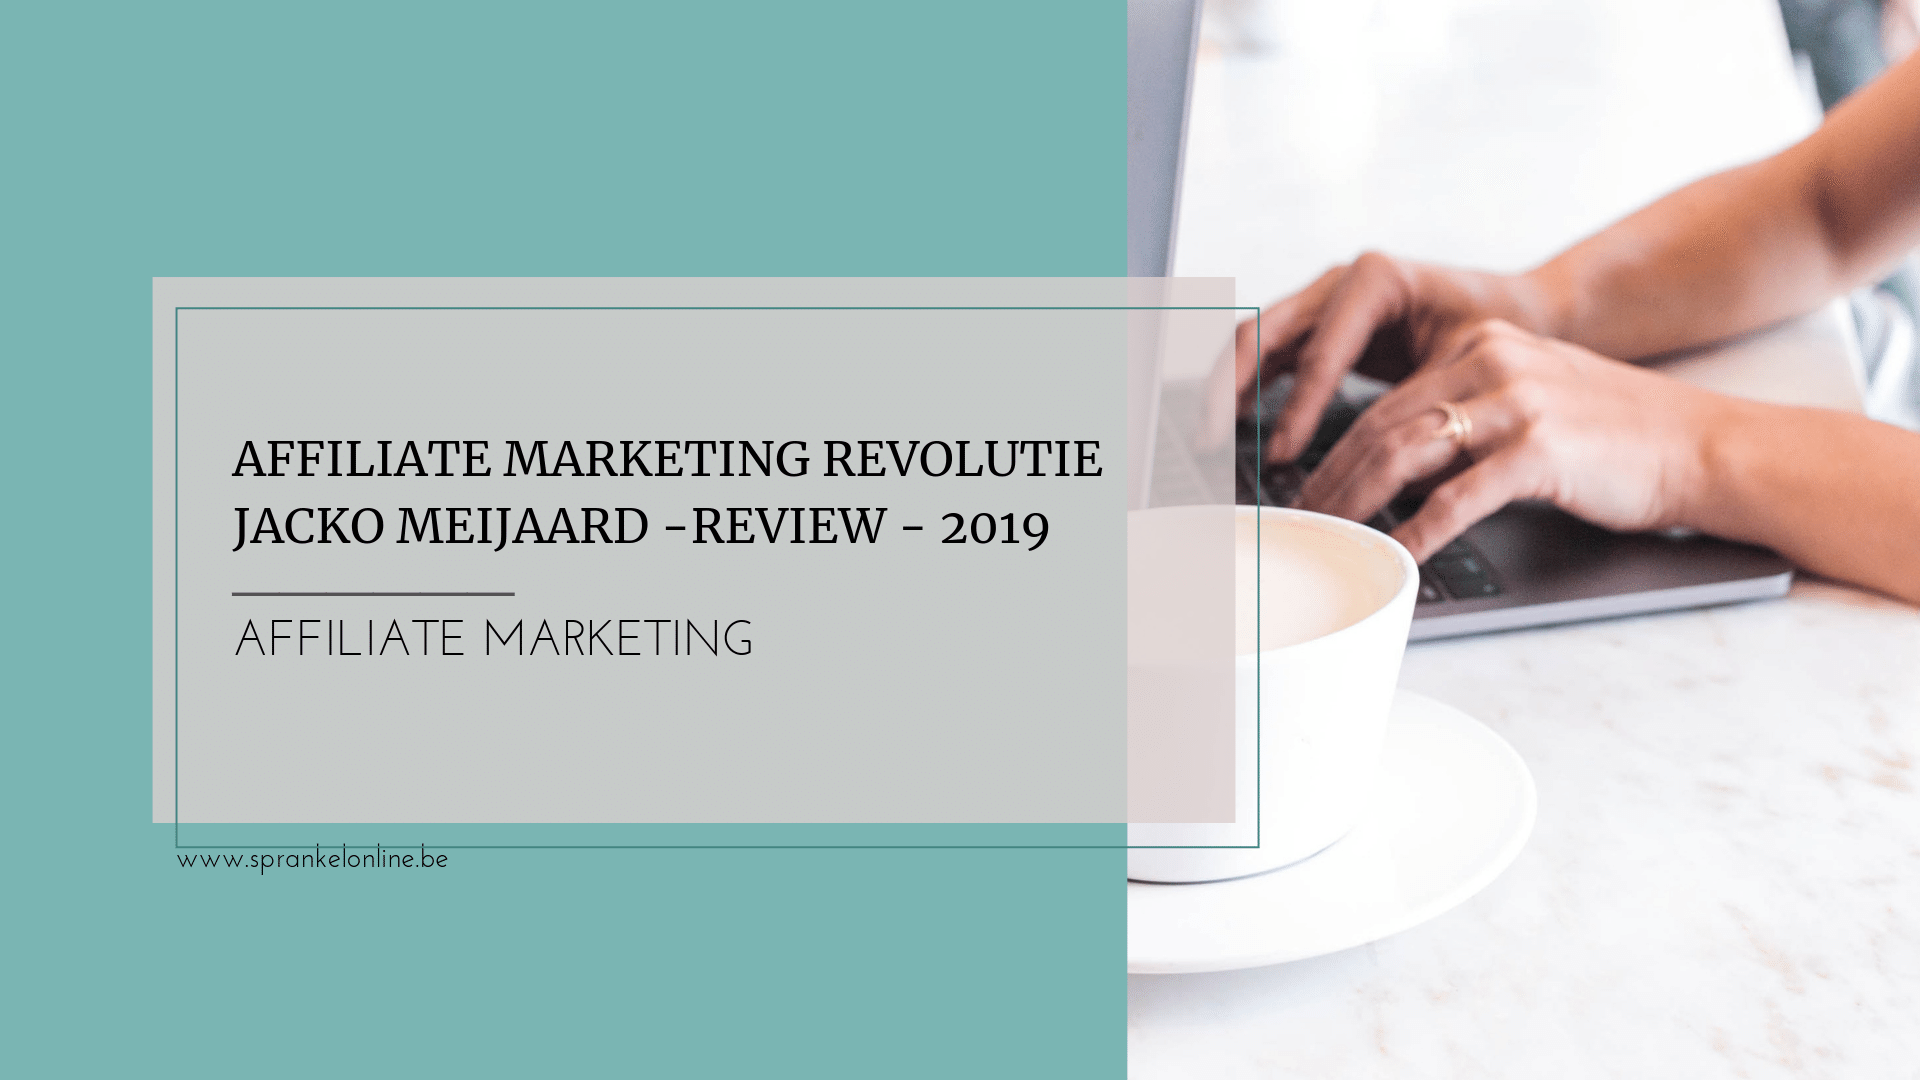 Affiliate Marketing Revolutie - Jacko Meijaard - Review 2019